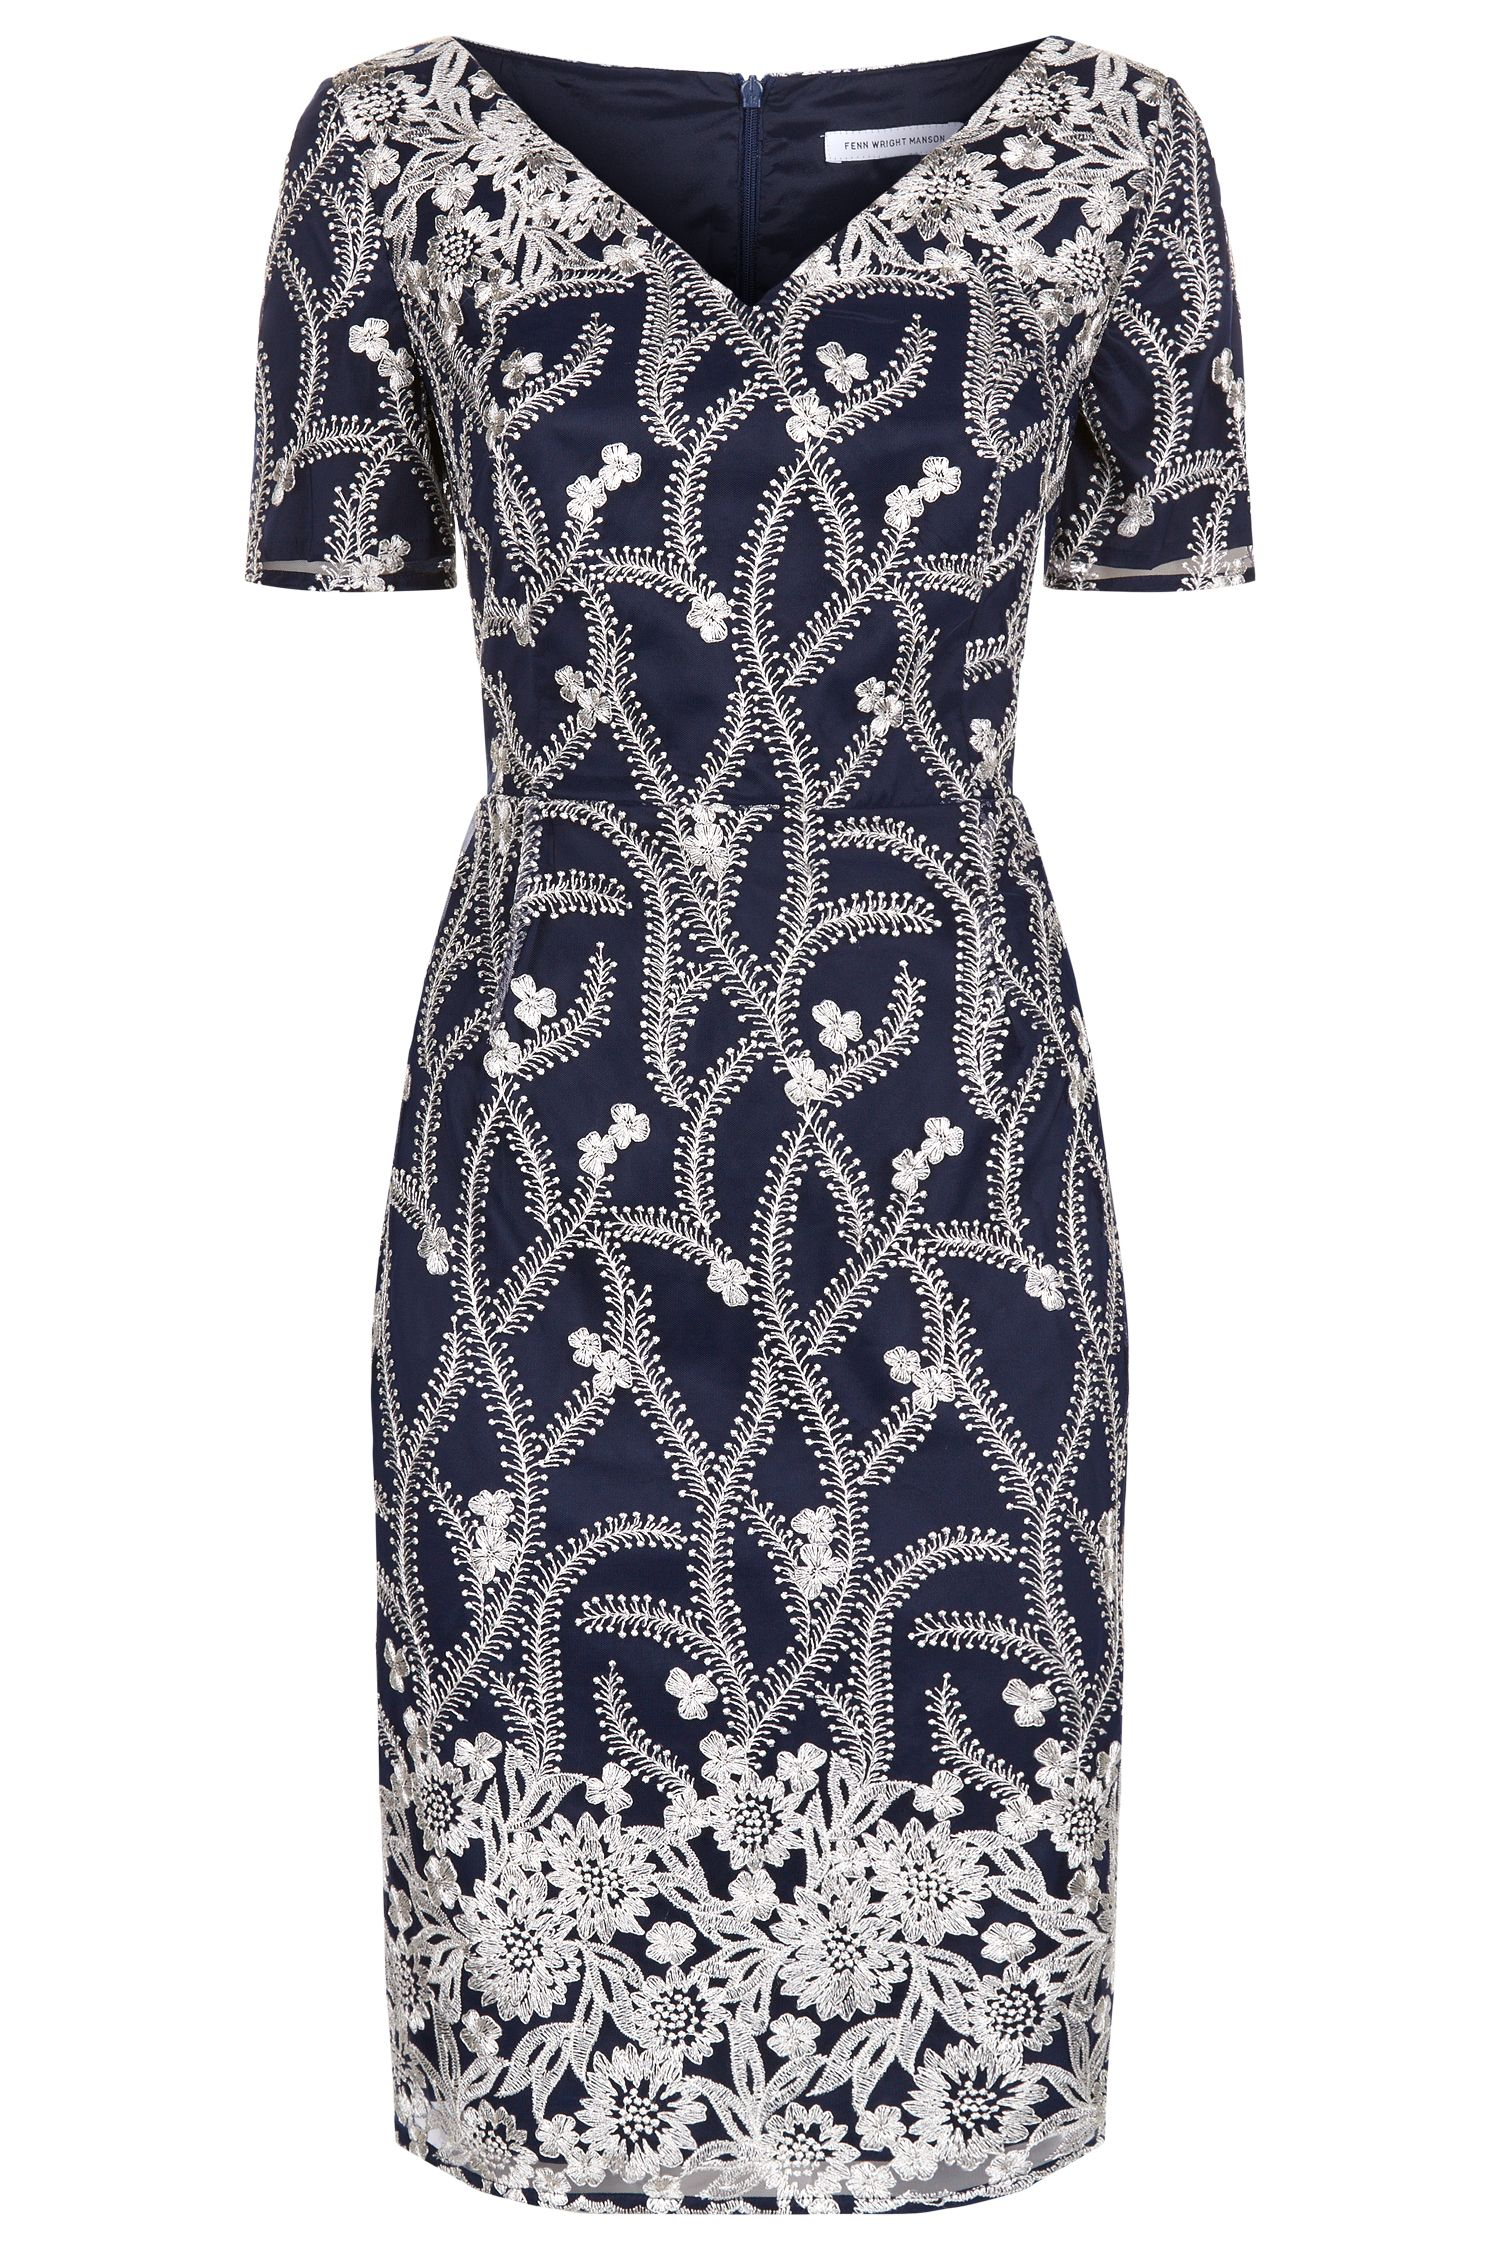 Fenn Wright Manson Rhea Dress, Blue Multi